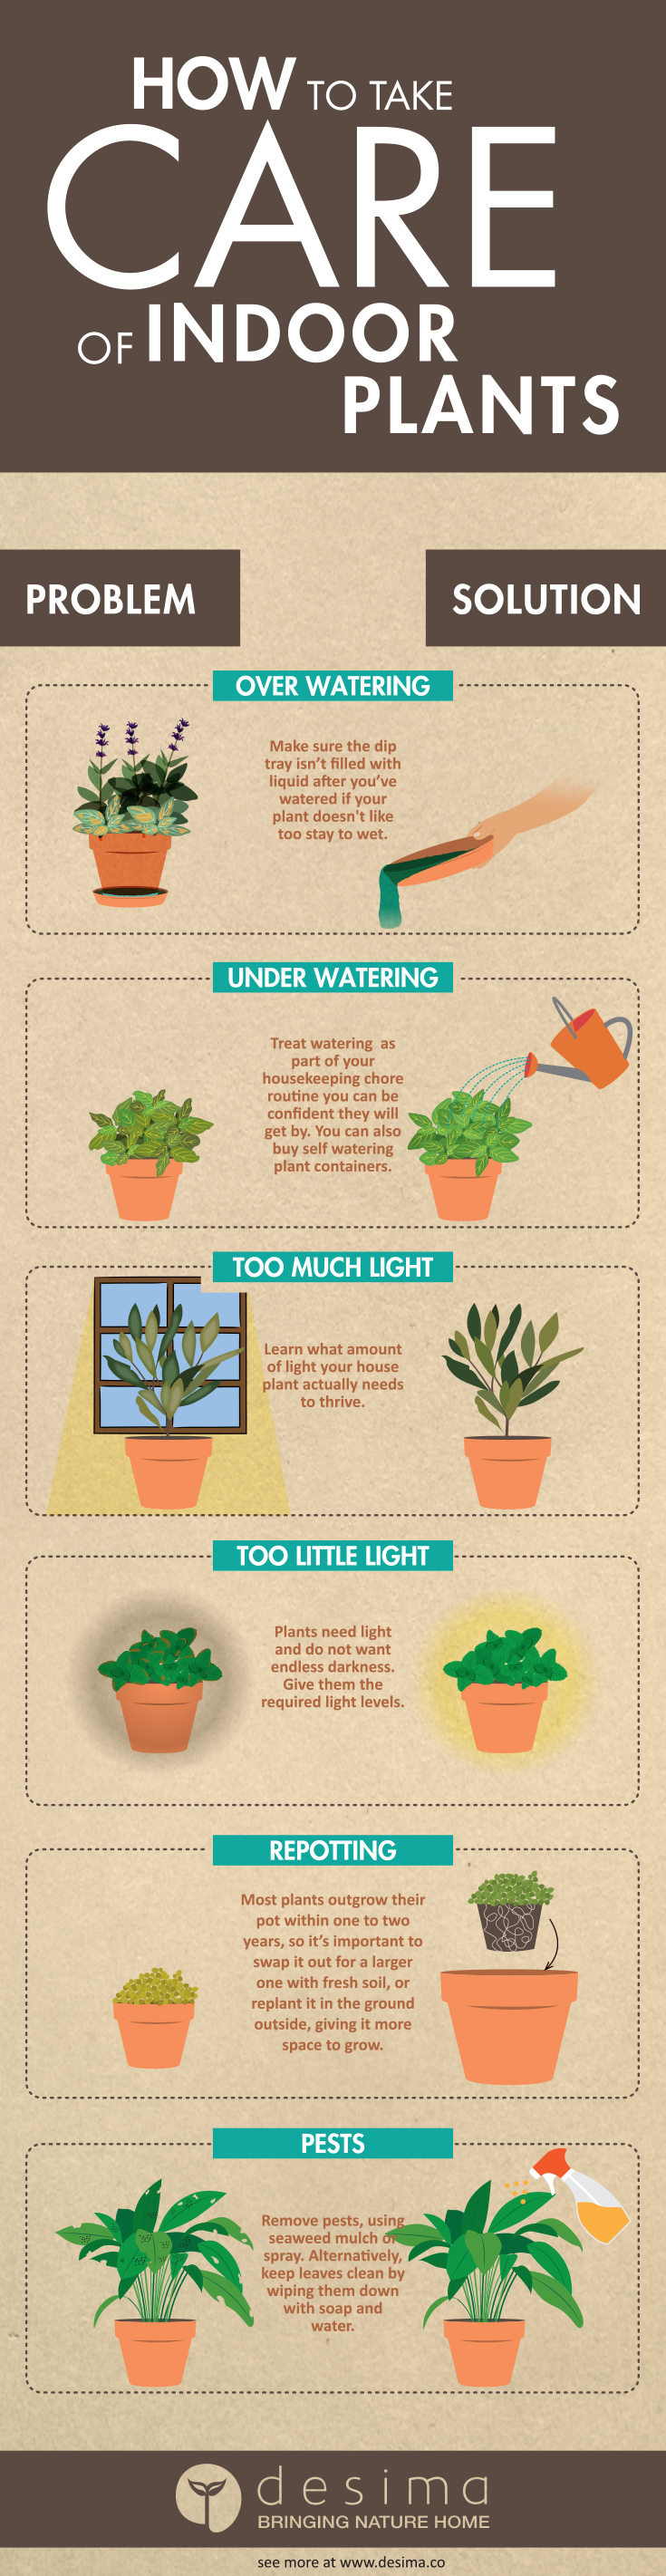 How to take care of indoor plants?